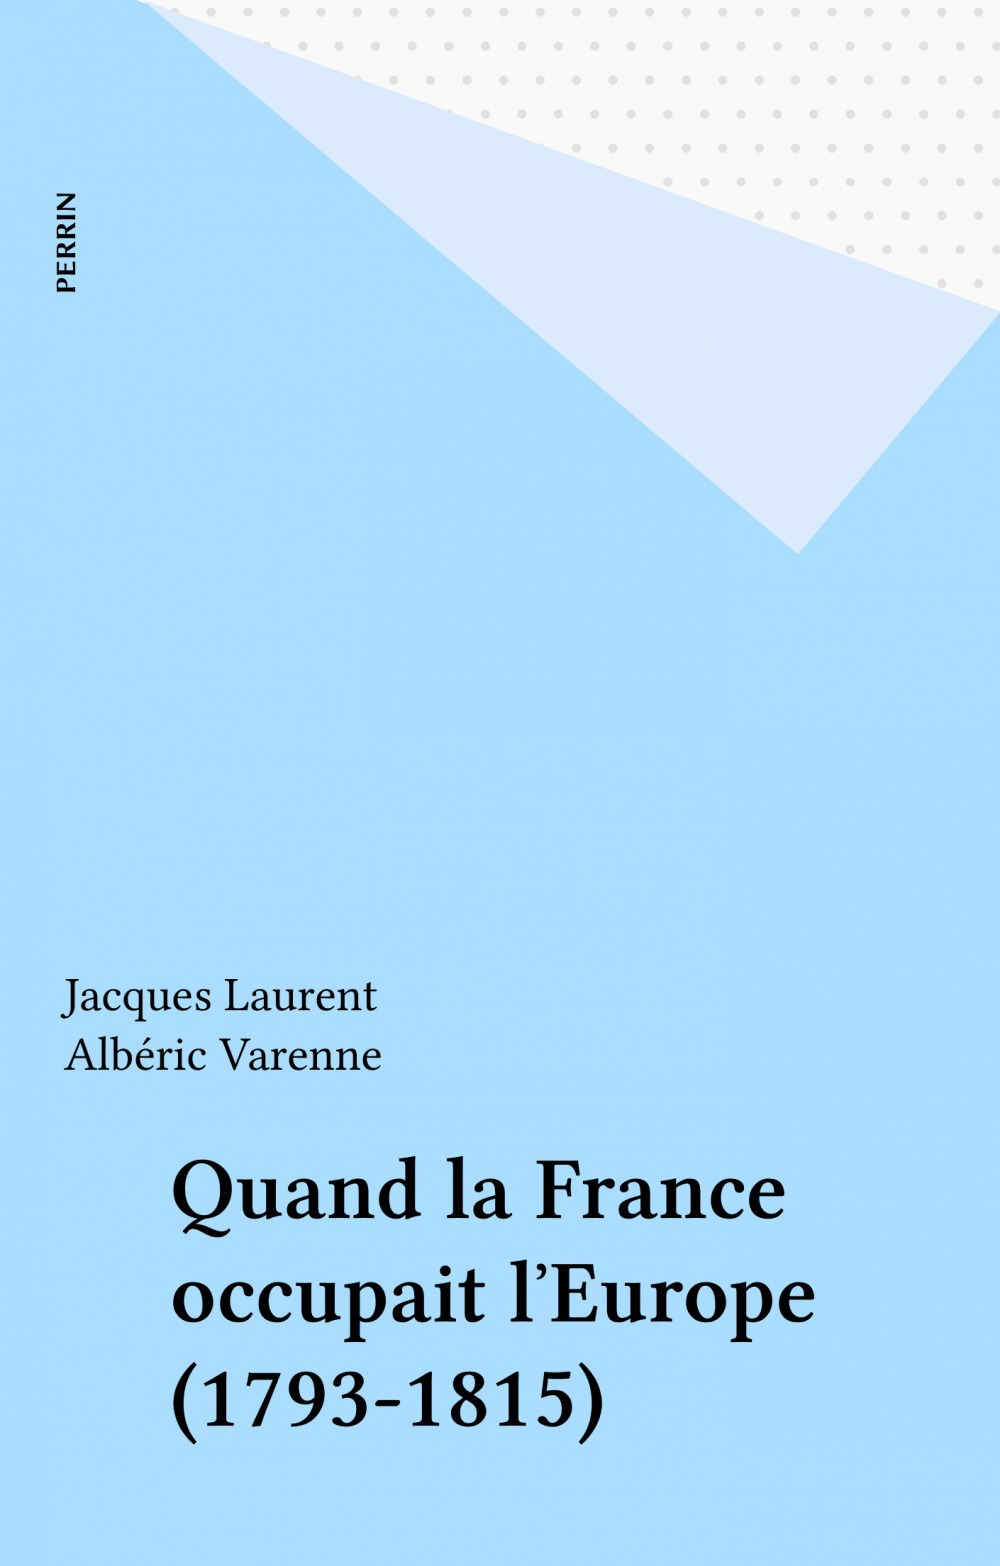 Quand la France occupait l'Europe (1793-1815)  - Jacques Laurent  - Albéric Varenne